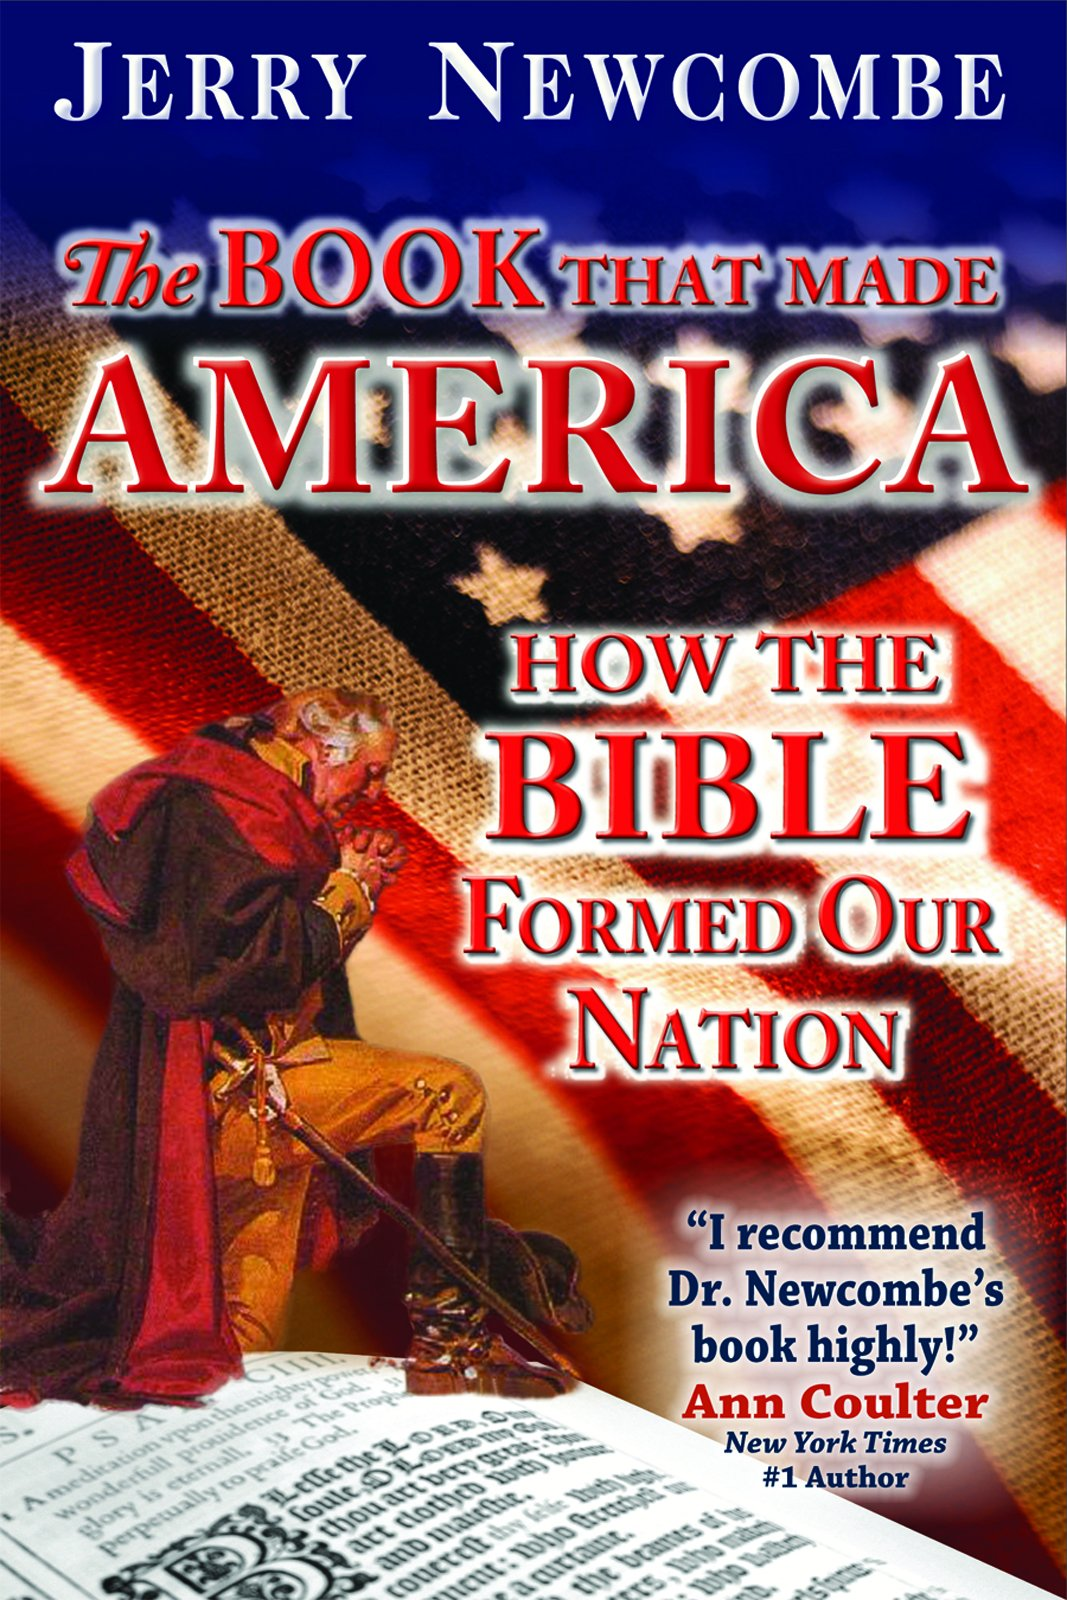 The Book That Made America: How the Bible Formed Our Nation